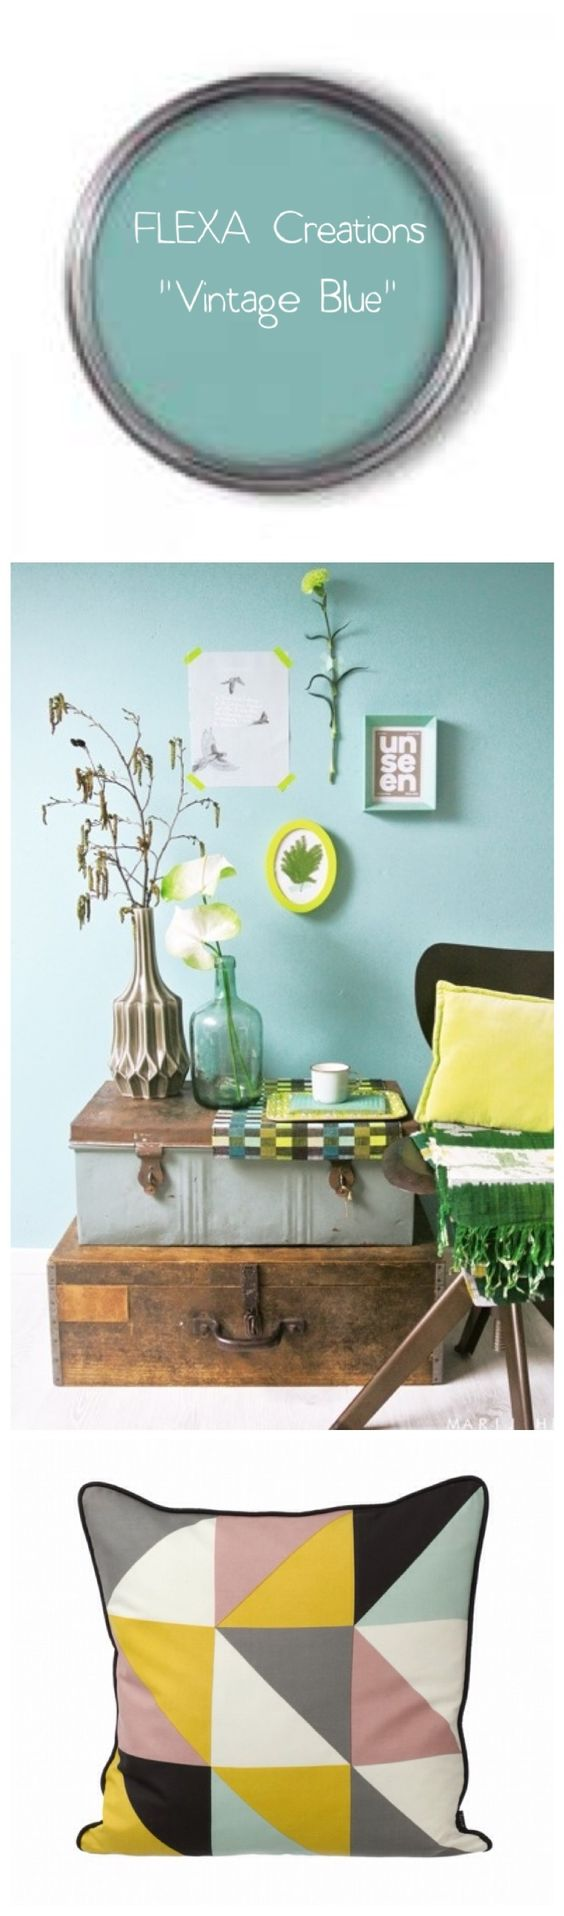 Vintage, Bedroom wall and Blue on Pinterest